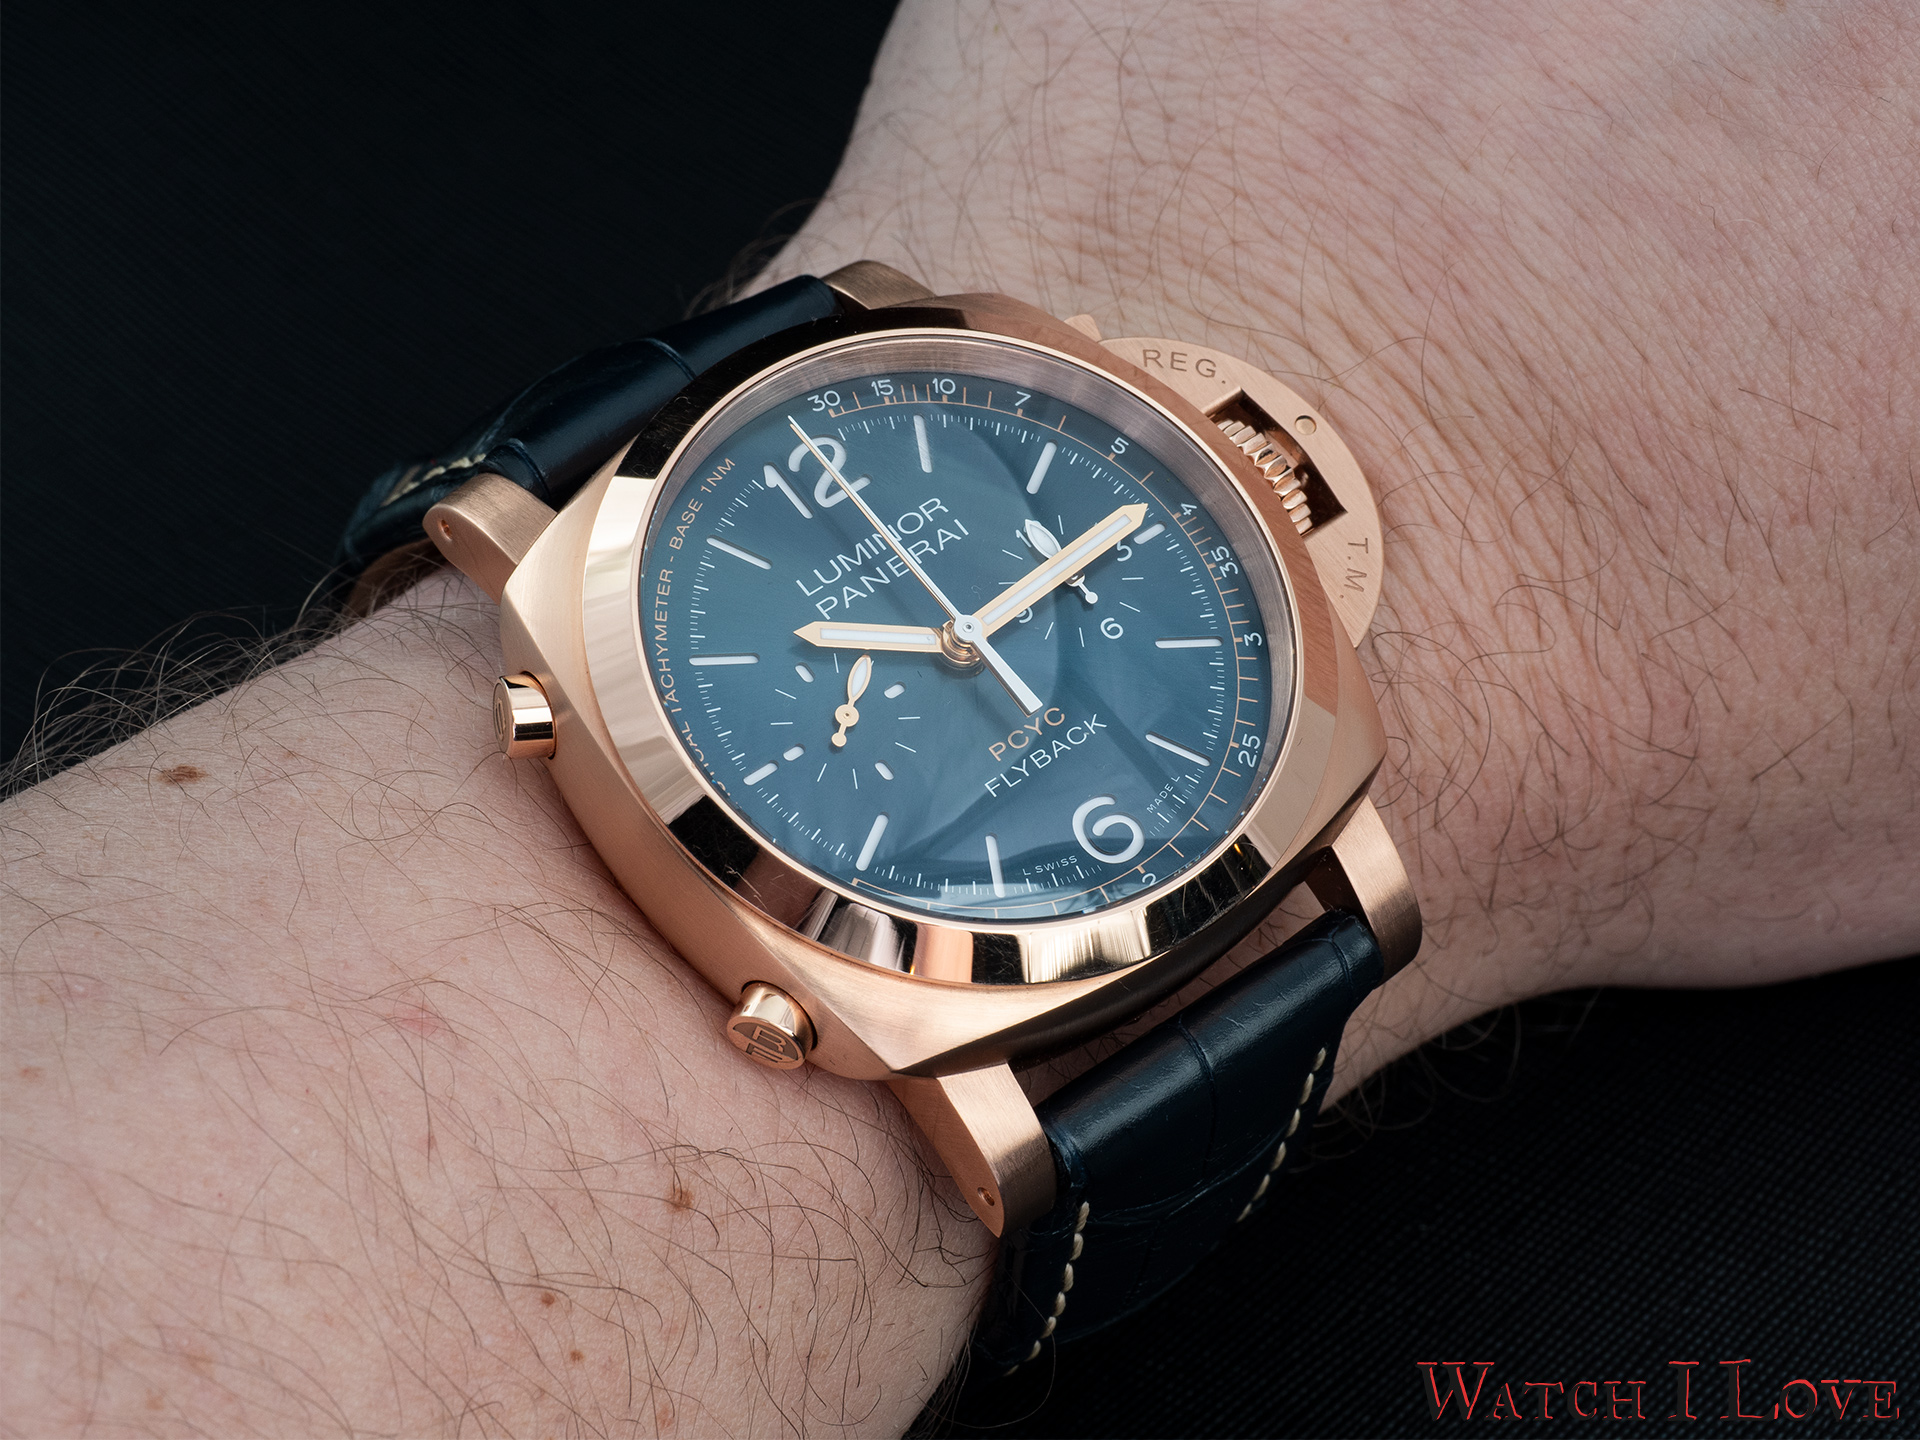 Panerai PAM1020 on the wrist